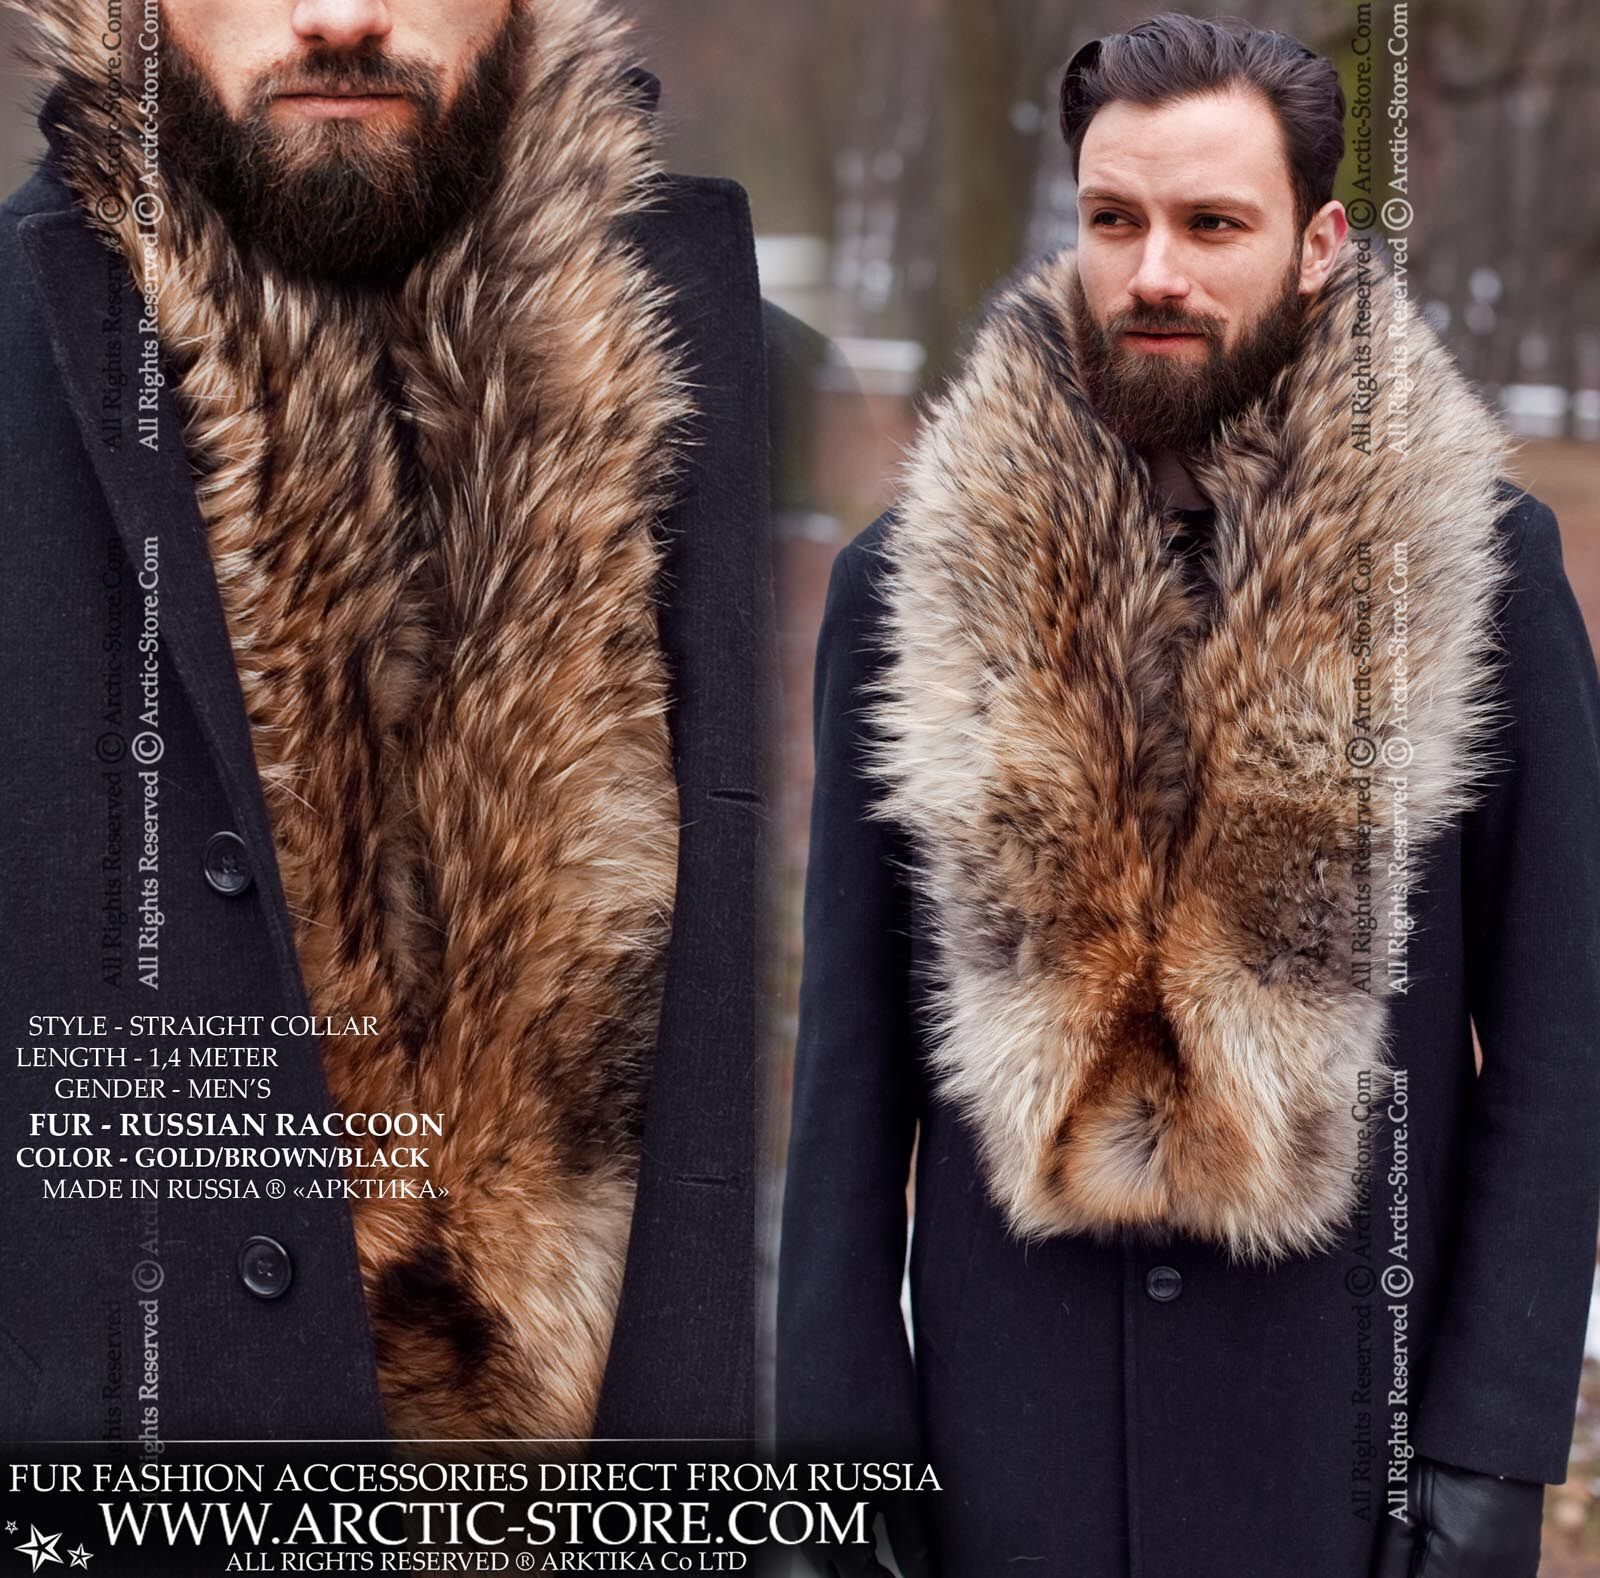 Our men's Russian fur boa will certainly keep you warm and looking great cold season. This luxurious 140 centimeters of raccoon fur is the ultimate winter fashion accessory. Truly fashionable men will appreciate the styling and warmth of this new raccoon fur boa. Made of Russian raccoon fur Boa measures approximately 140 cm long by 18 cm wide.